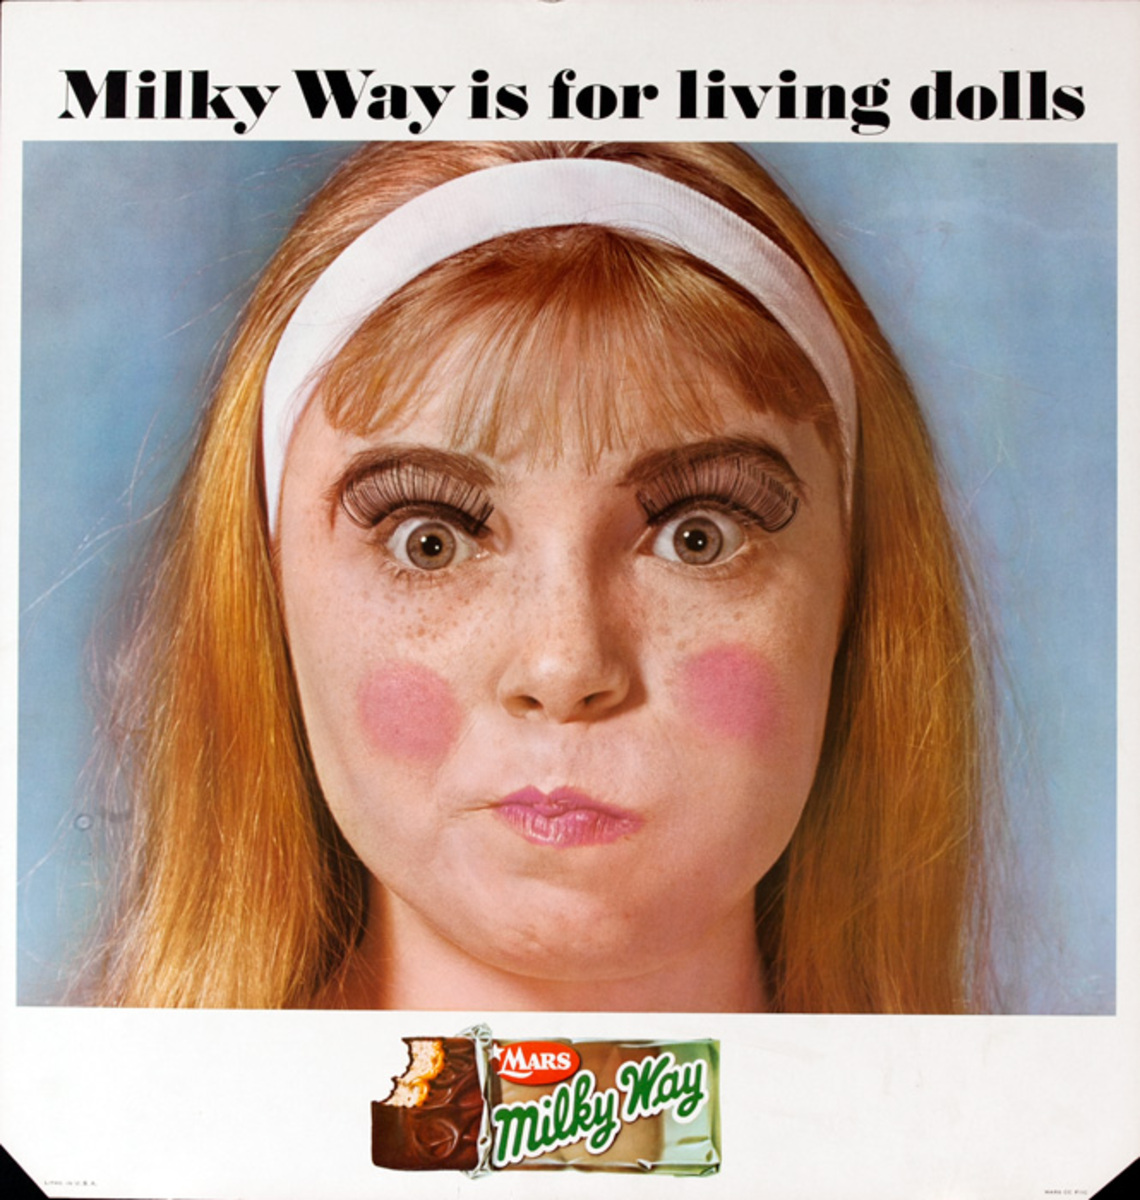 Mars Candy Original Advertising Poster Milky Way Is For Living Dolls